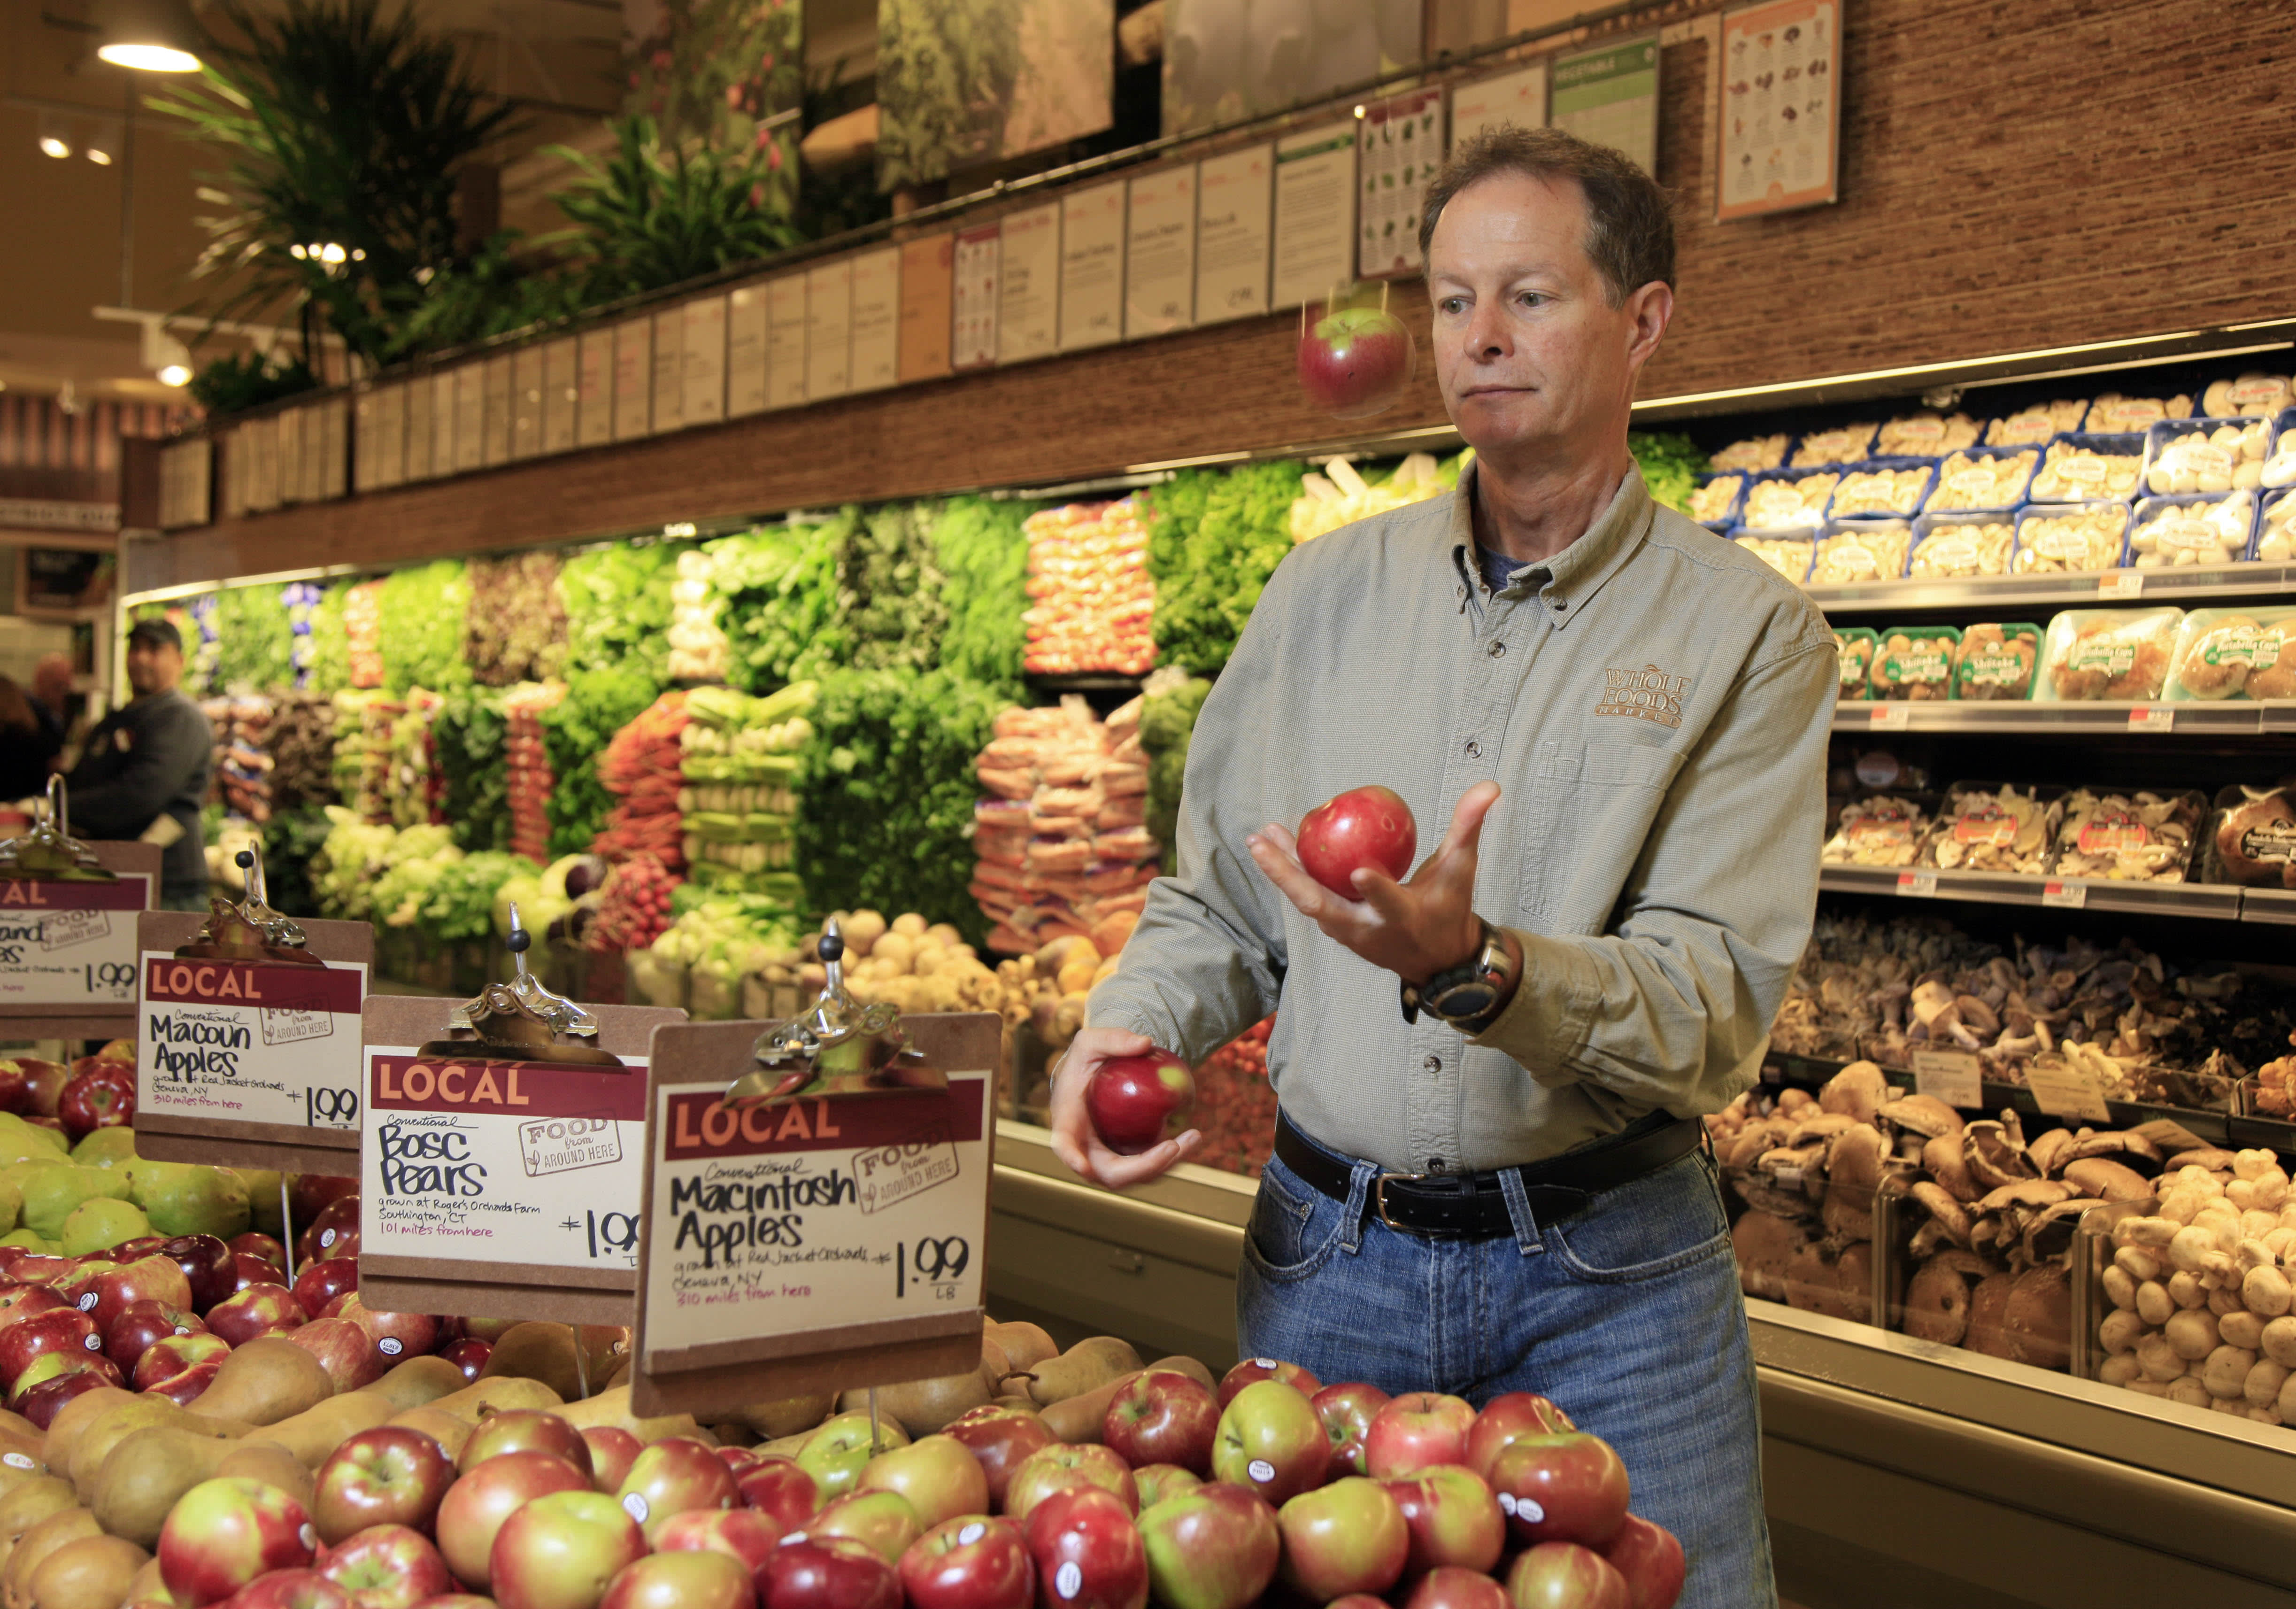 organizational behavior john mackey whole food market This case study research is an examination of whole foods market ceo john mackey and his modern approach to leadership and its effect on employee retention the.